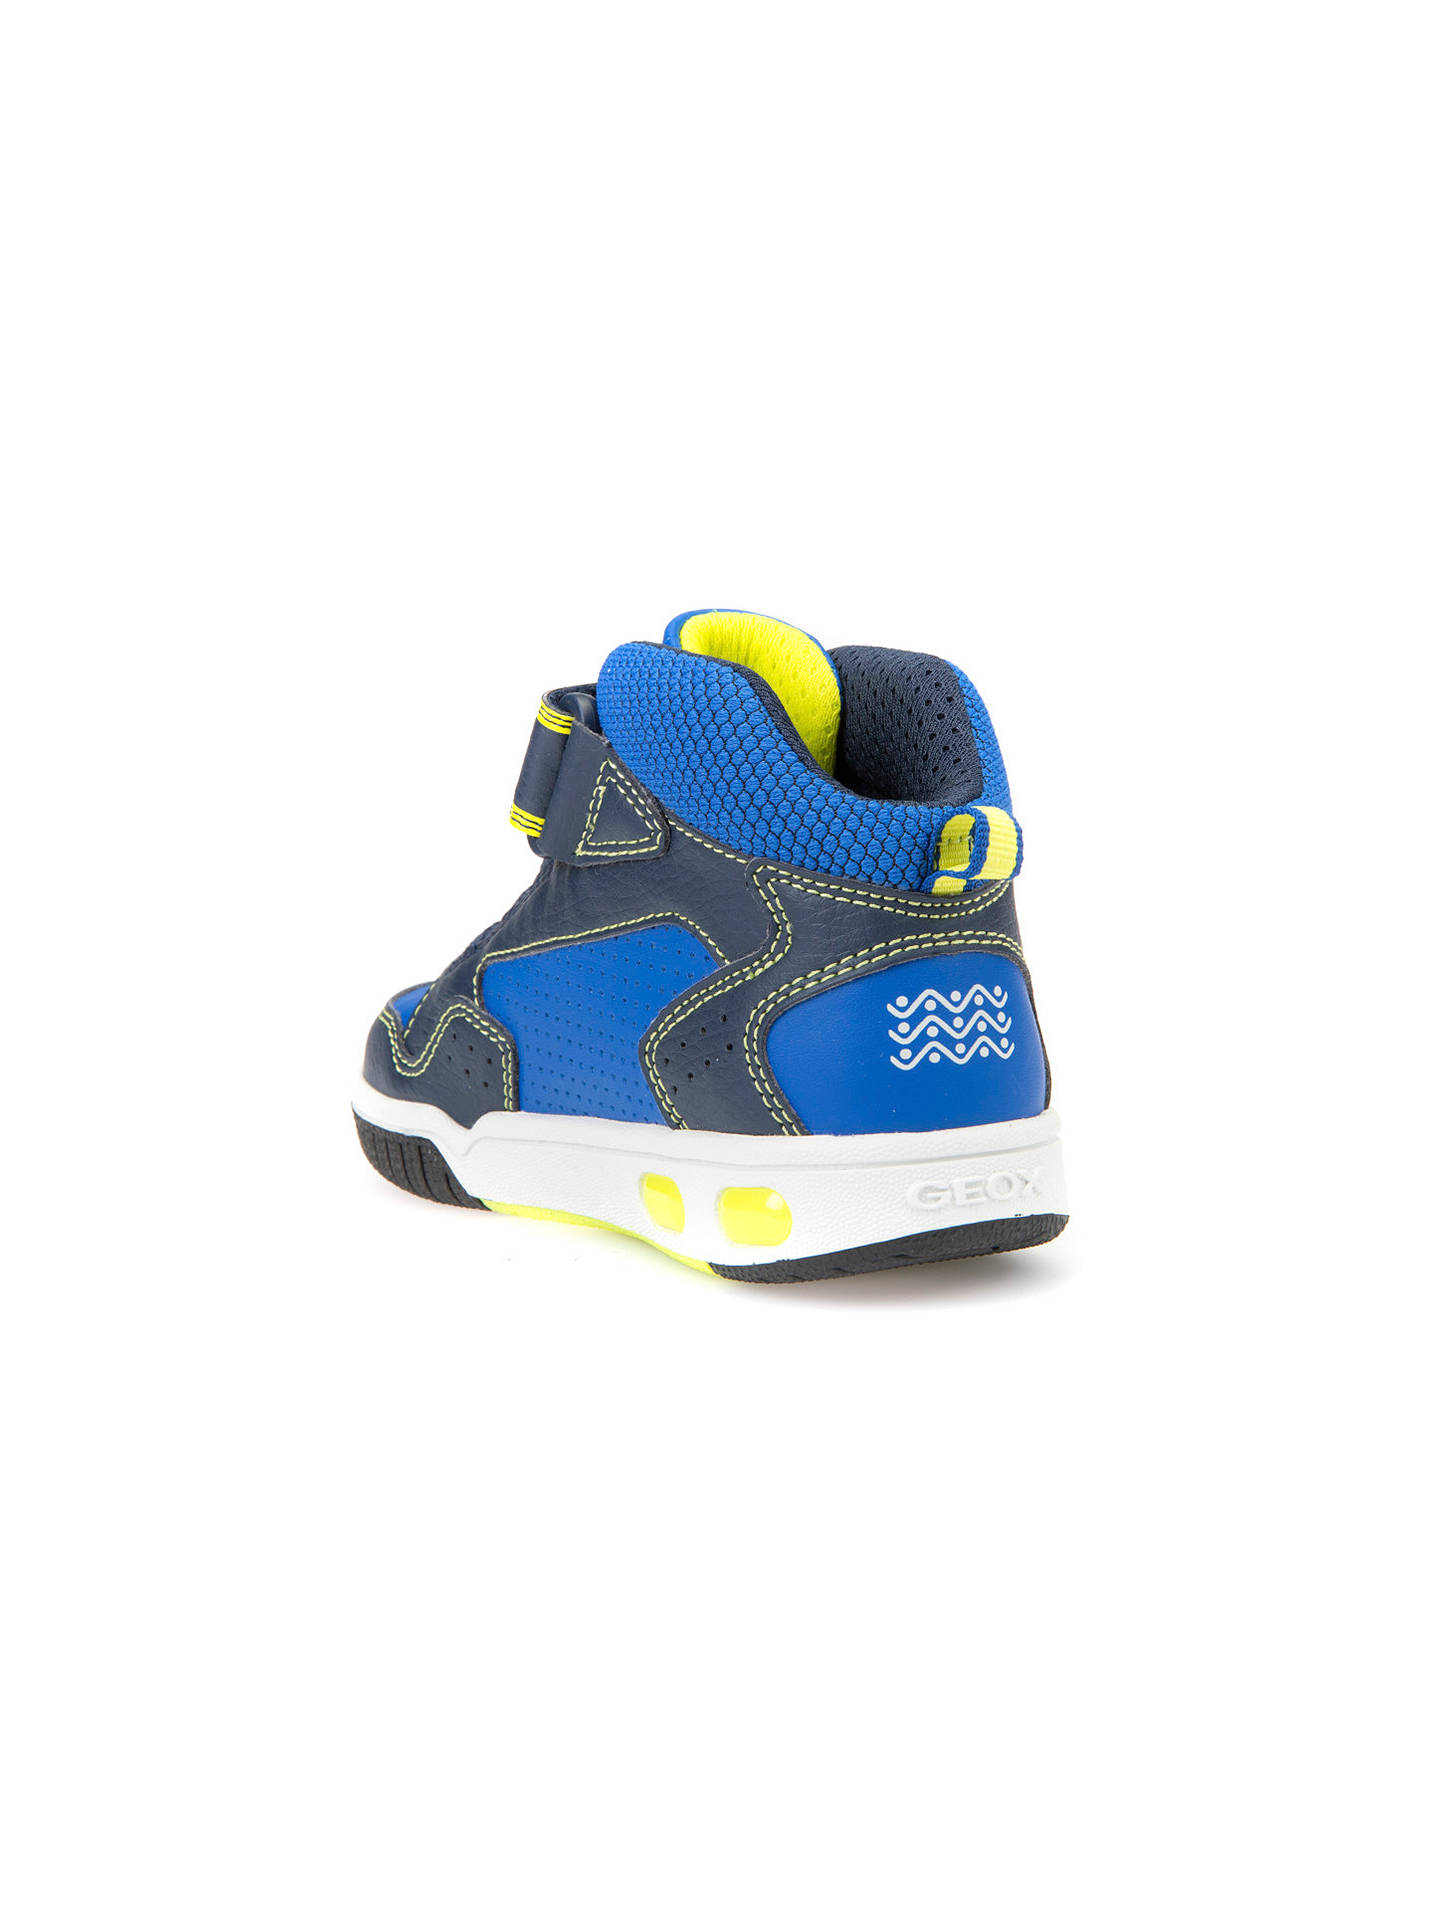 Geox Children's Gregg Rip Tape Trainers, NavyLime at John